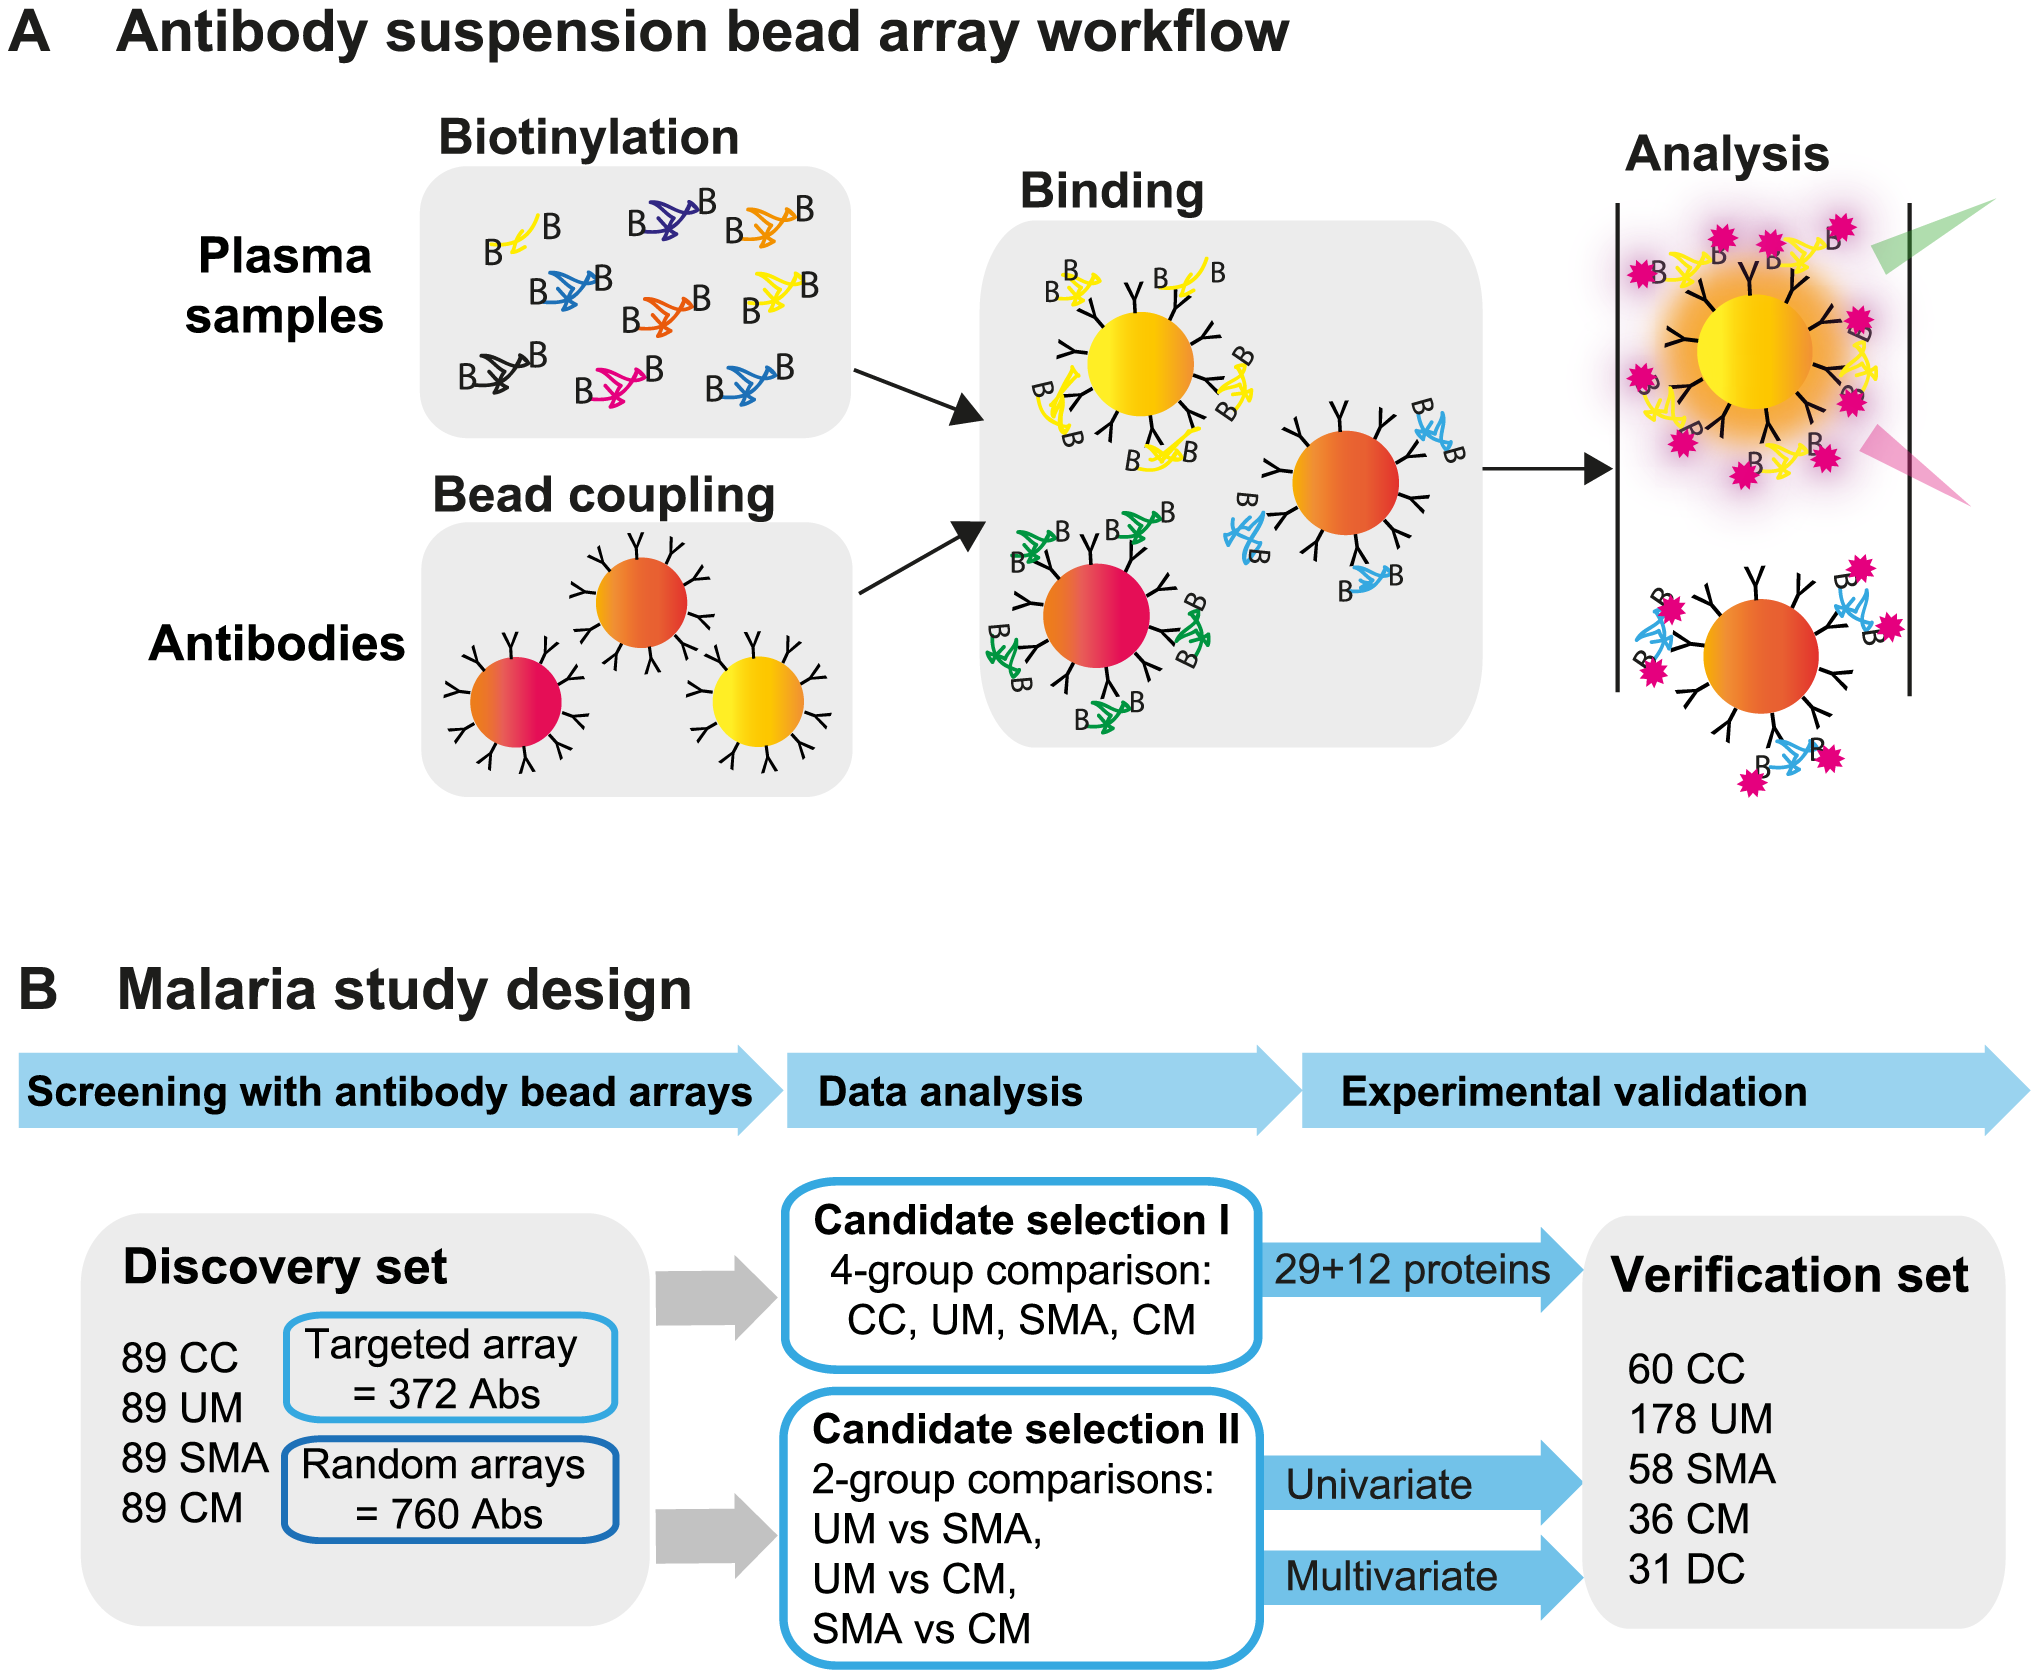 Overview of affinity proteomics screening and study design.